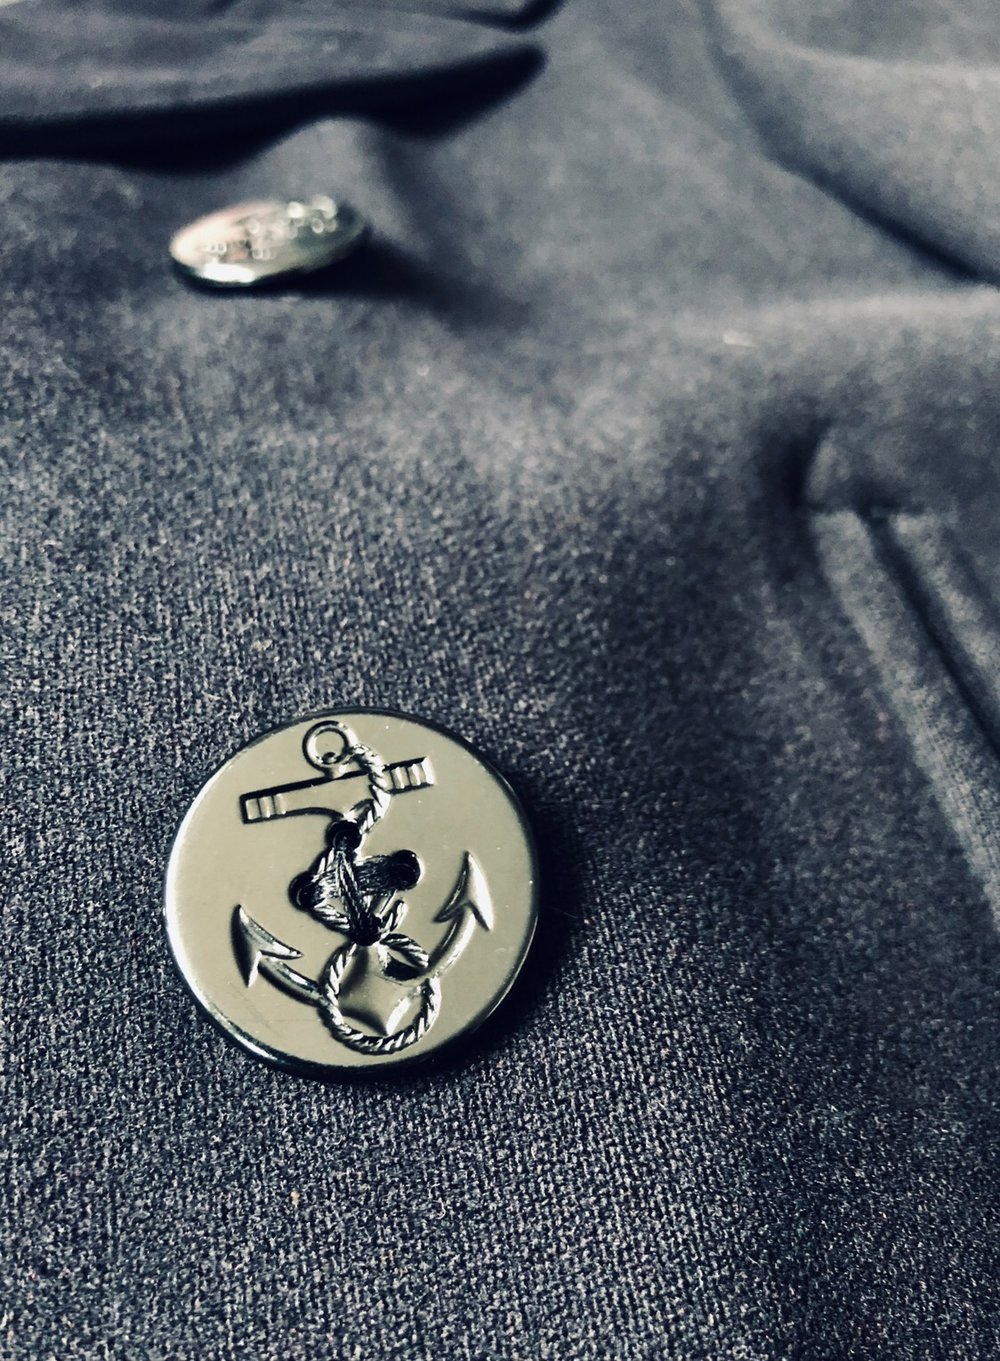 Emmi Pea Coat Buttons.JPG